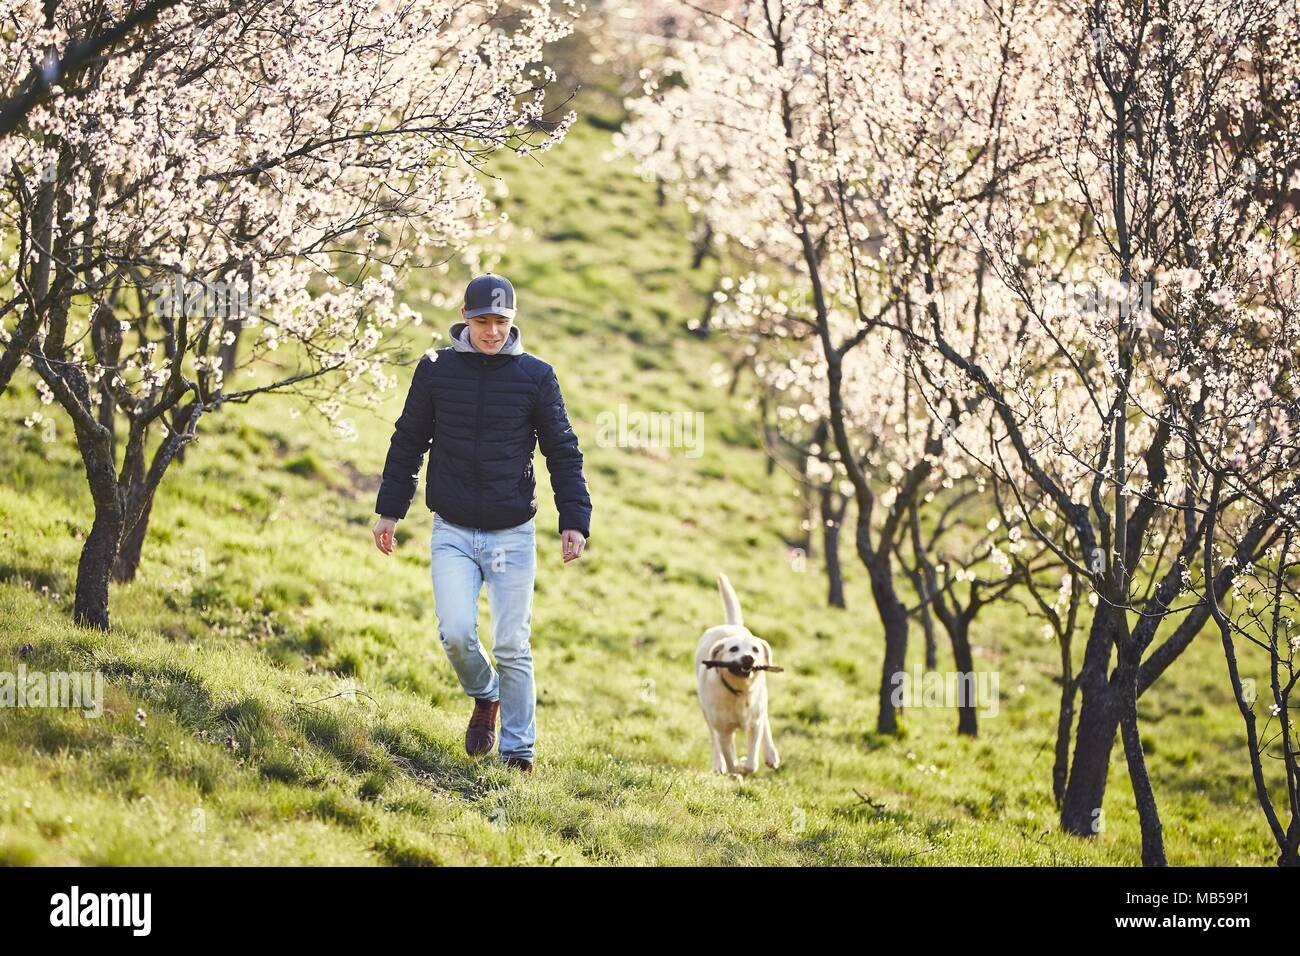 Morning in spring nature. Man with his dog (labrador retriever) walking between blooming trees. - Stock Image